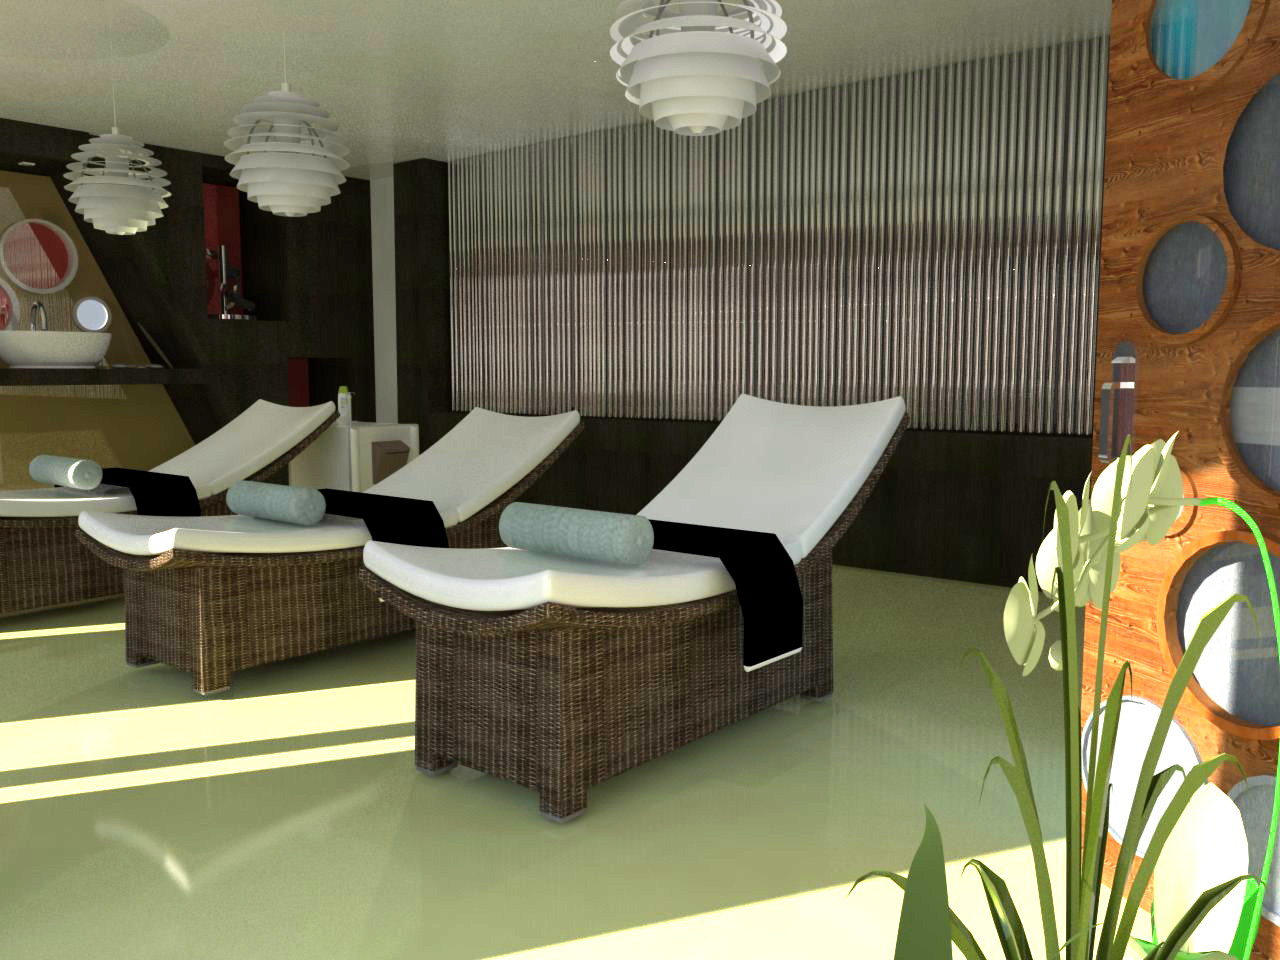 spa room designs additionally day spa design ideas furthermore spa